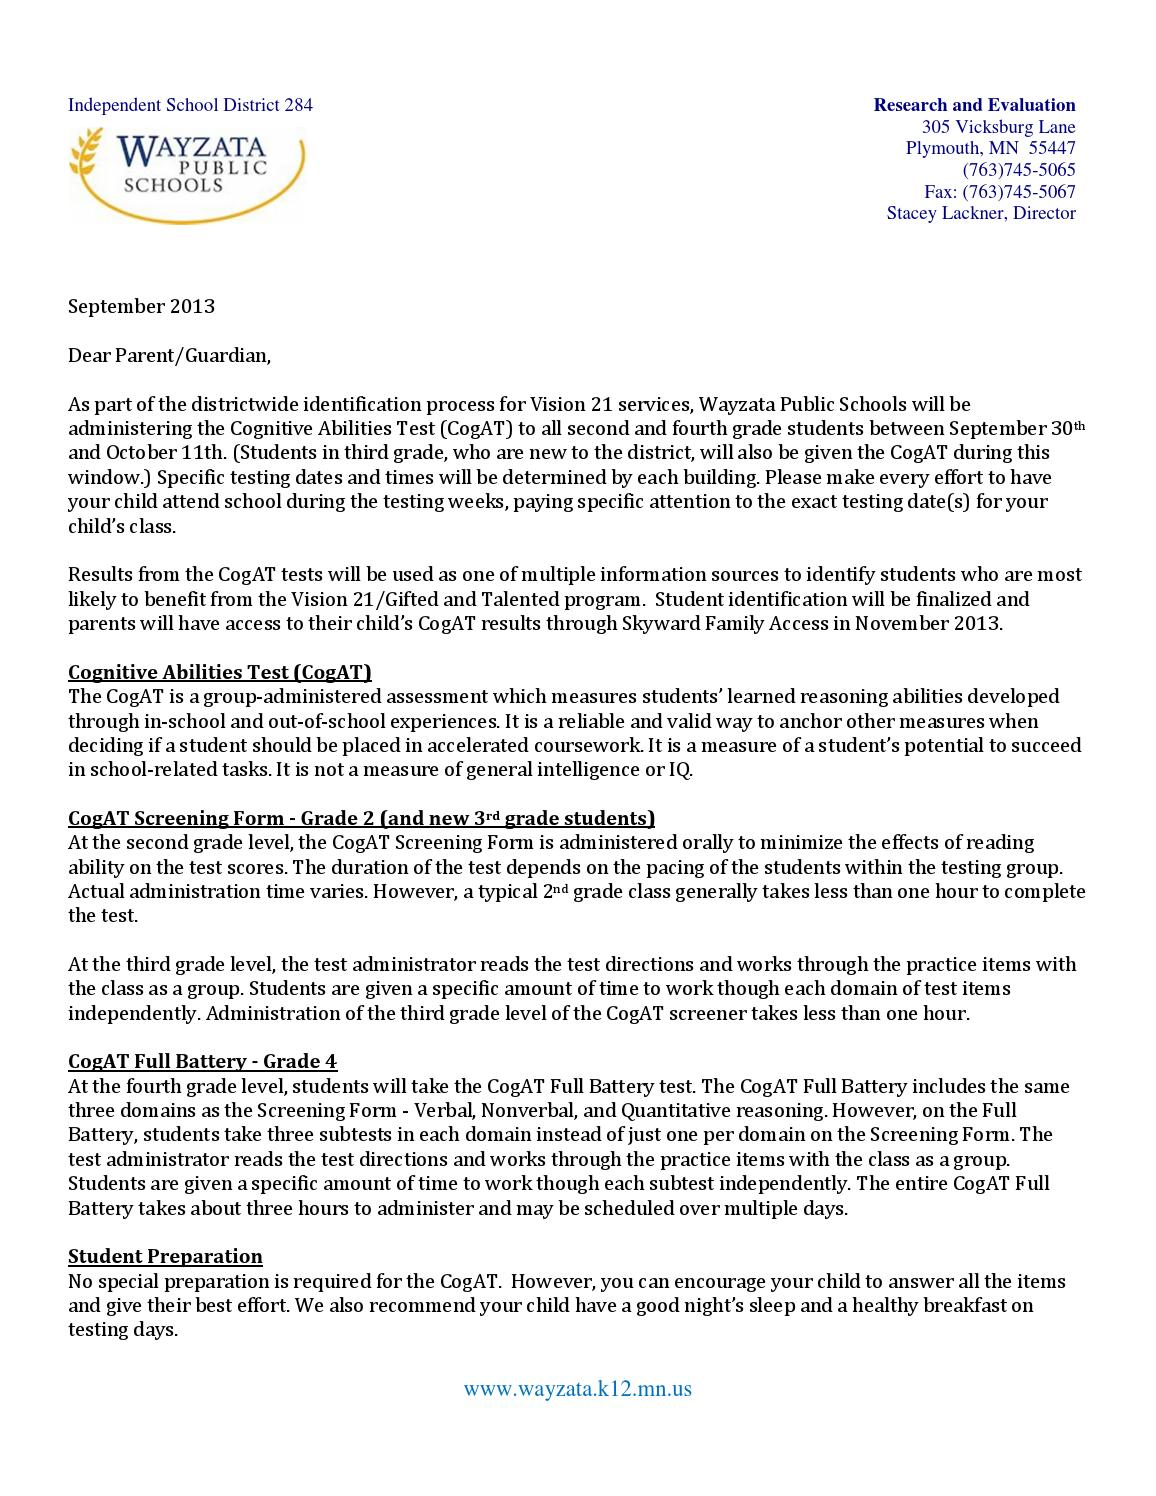 Cogat Parent Letter September 2013 By Wayzata Public Schools Issuu